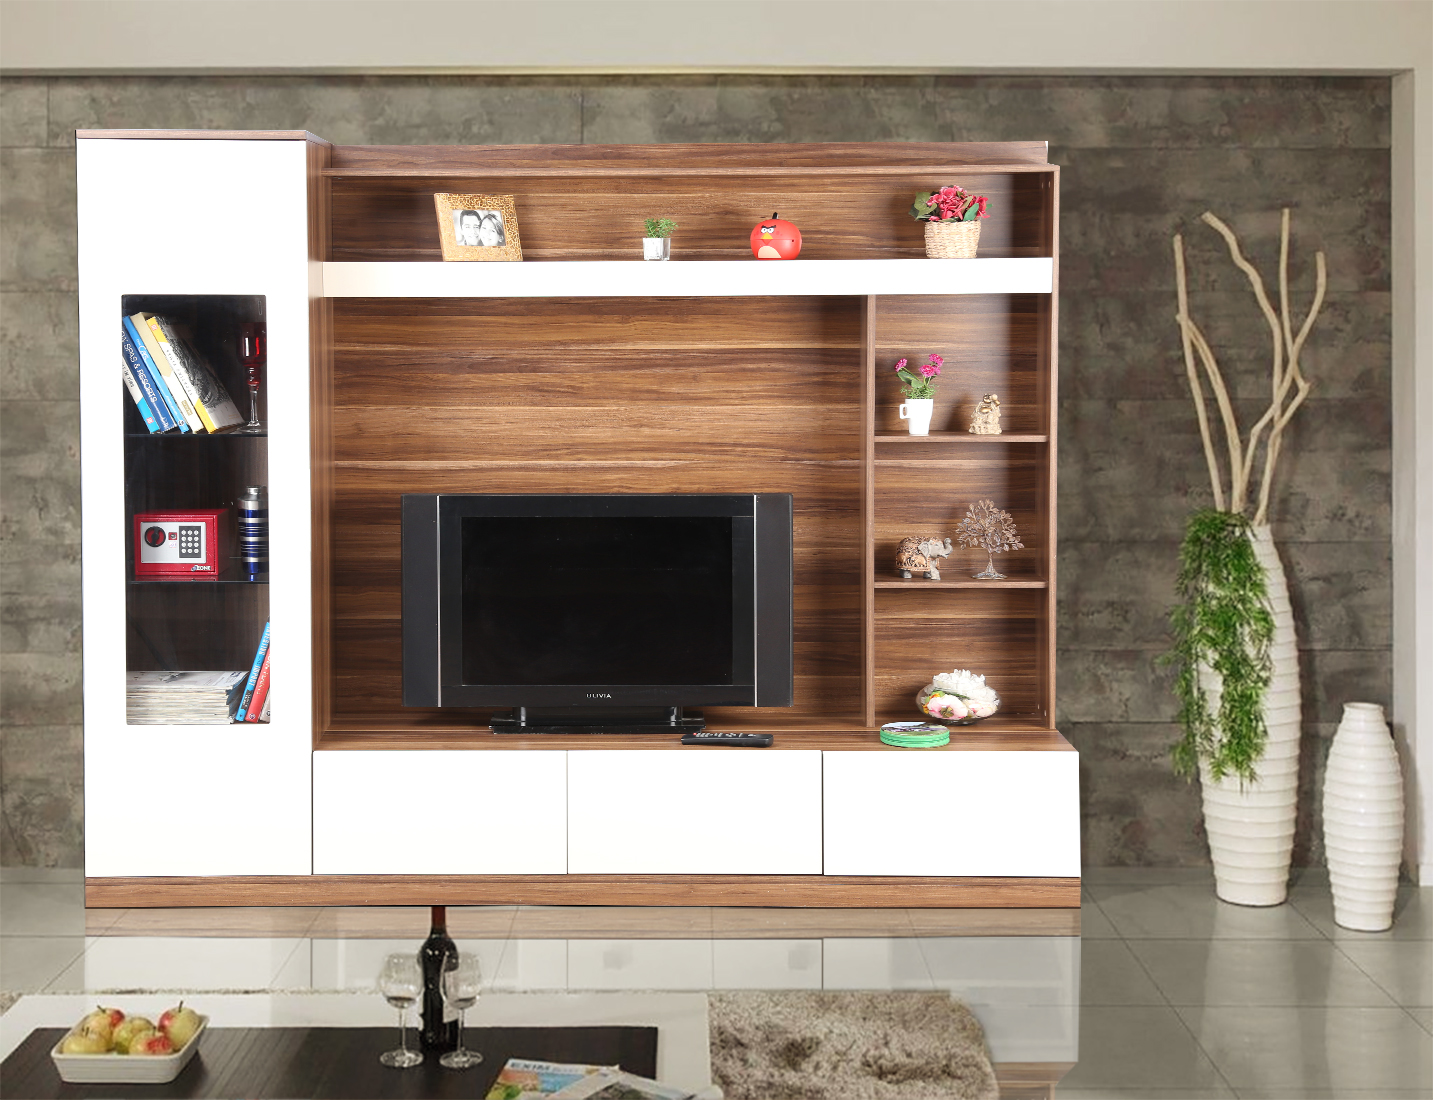 Julian Engineered Wood TV Unit in High Gloss Apple Wood Colour by HomeTown